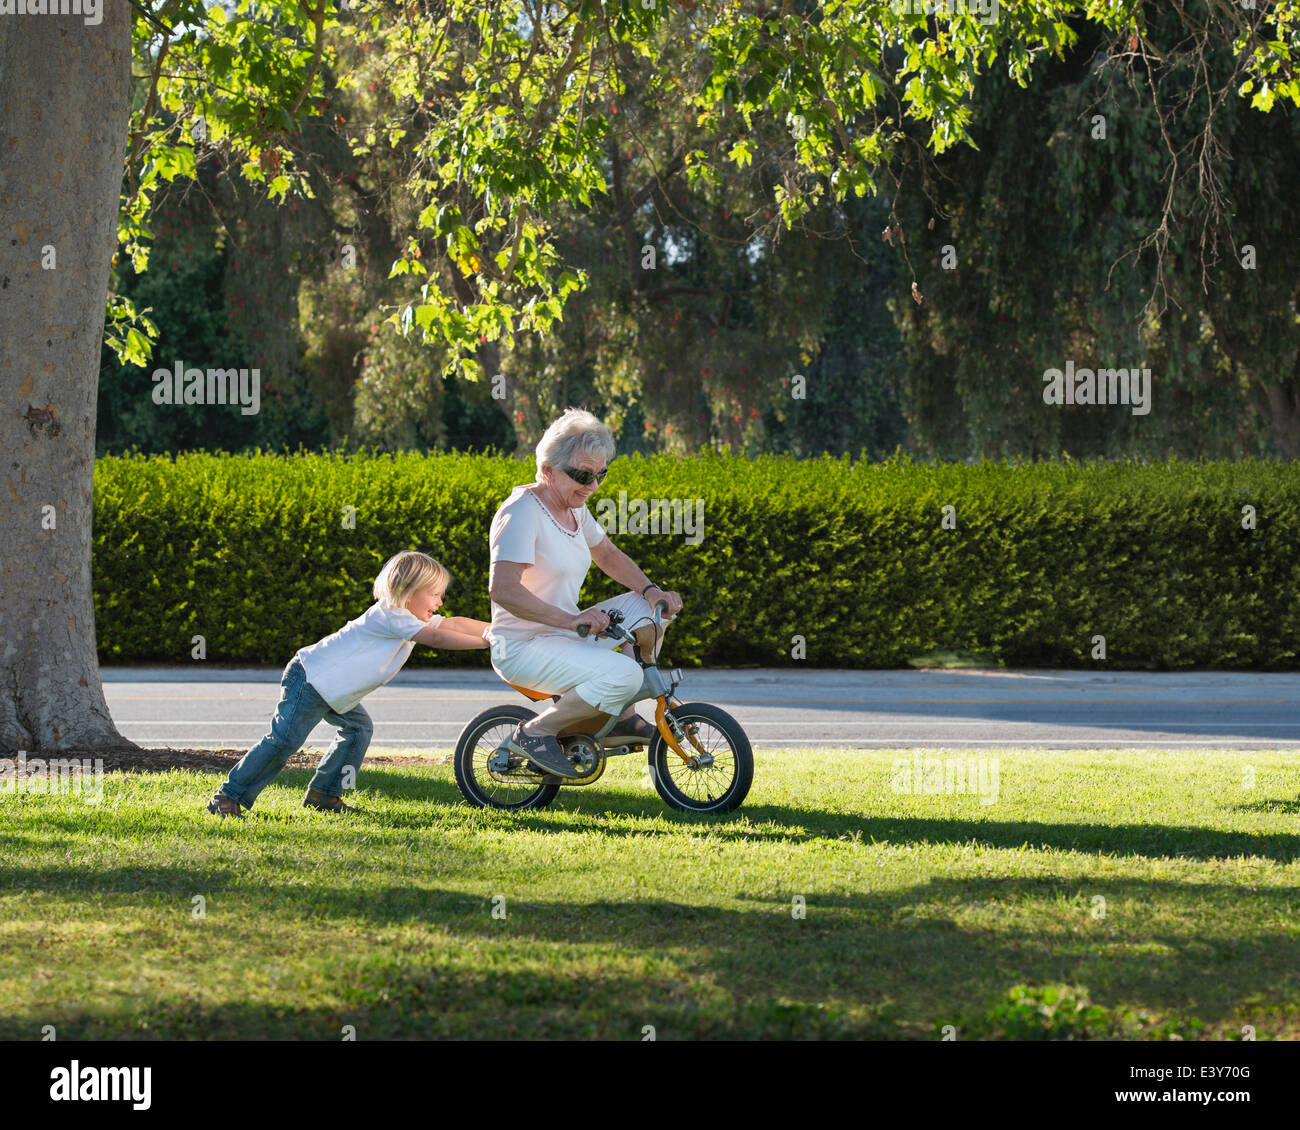 Three year old boy pushing grandmother on cycle in park - Stock Image